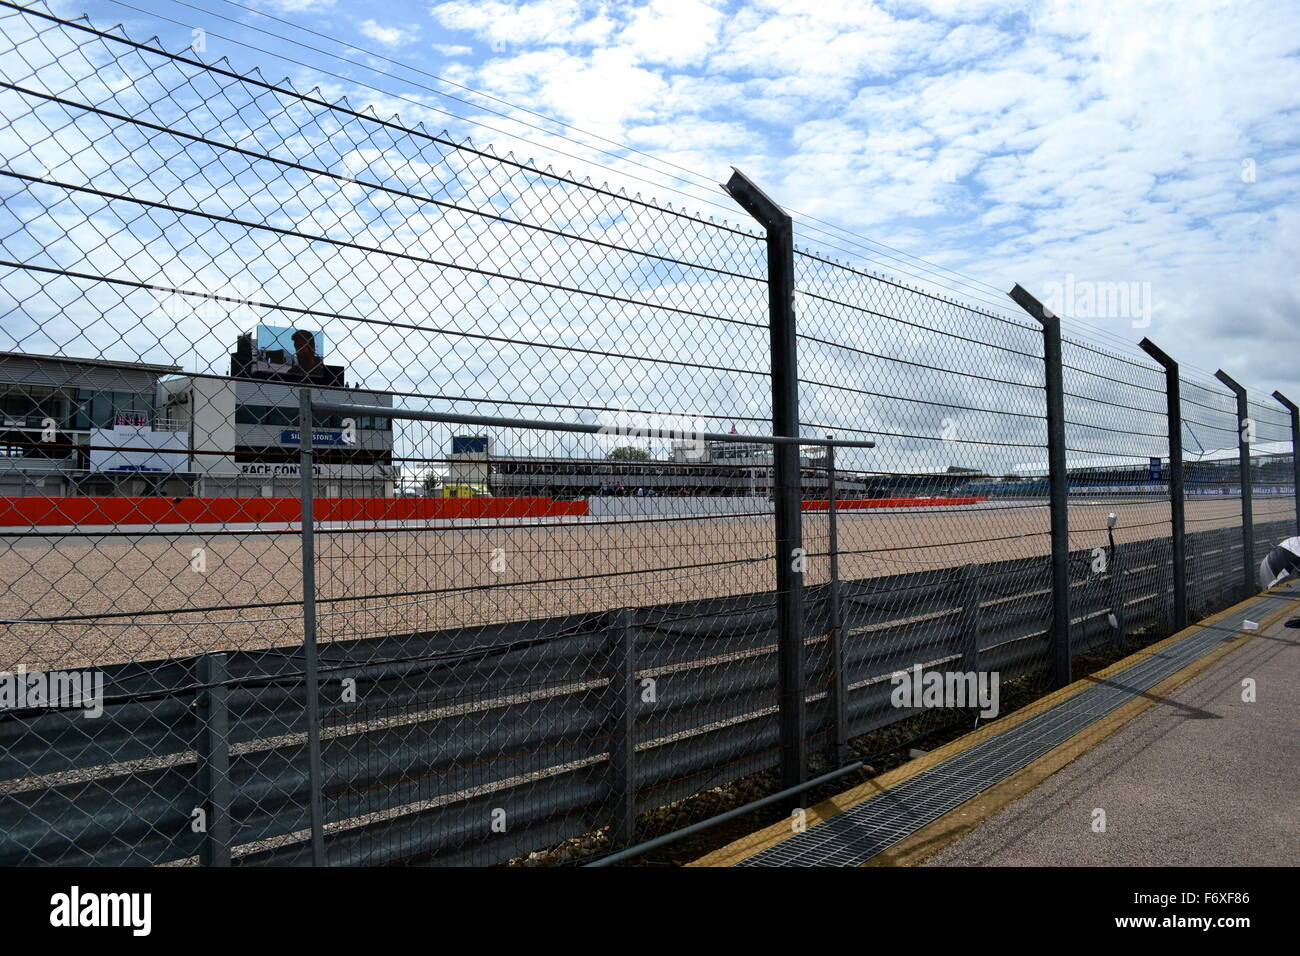 Silverstone track on a bright summers day at the british grand prix - Stock Image